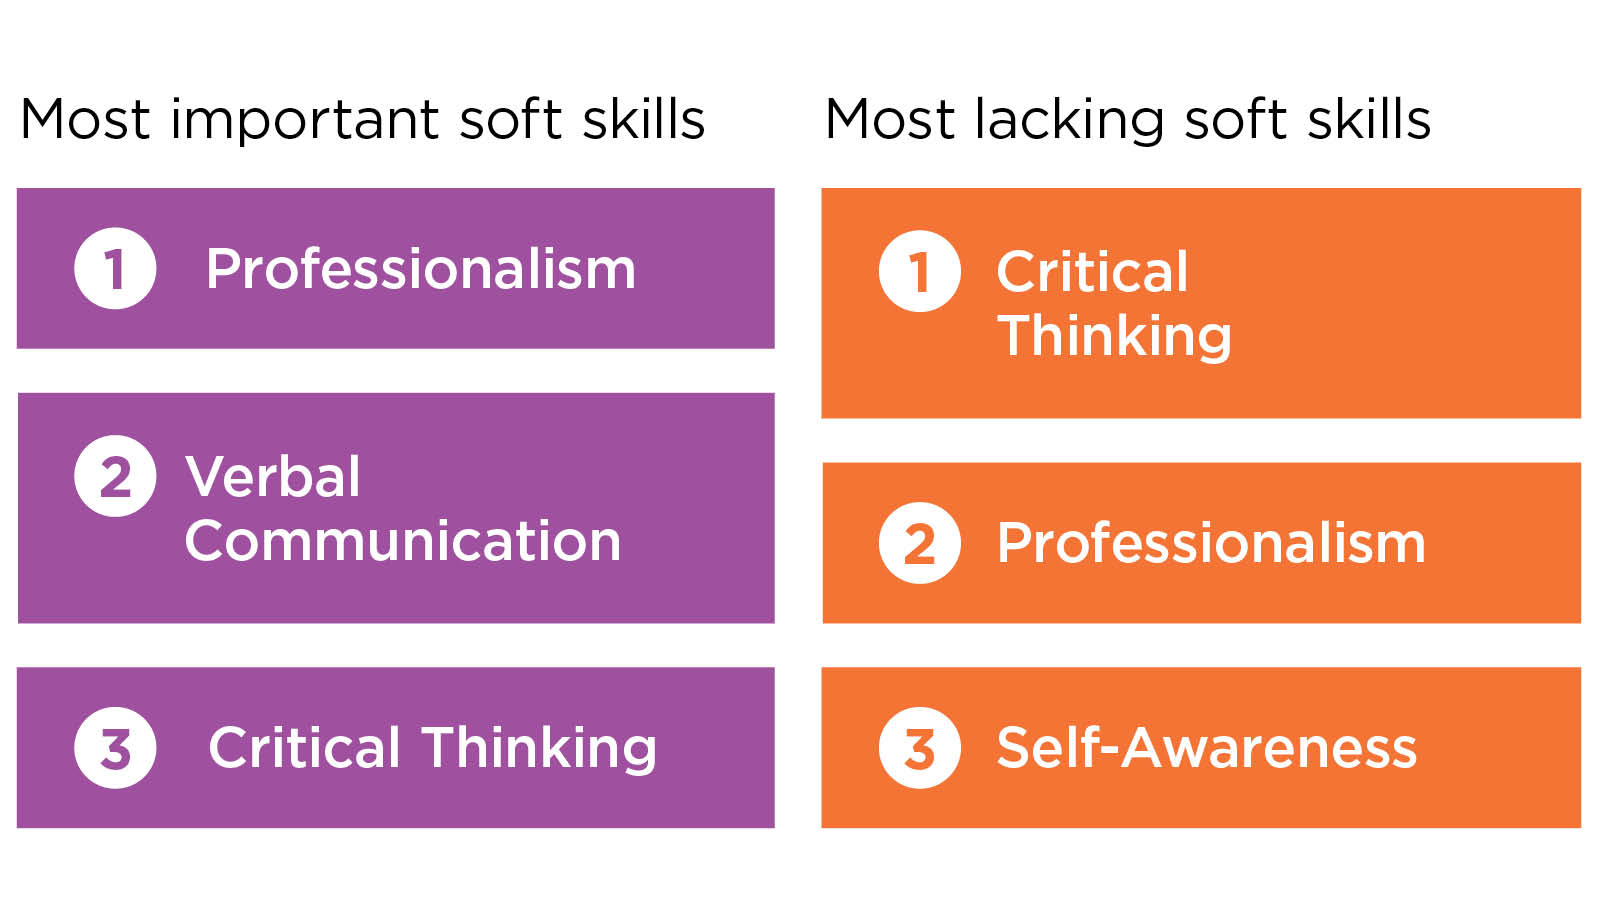 Most important and most lacking soft skills in medical assistants